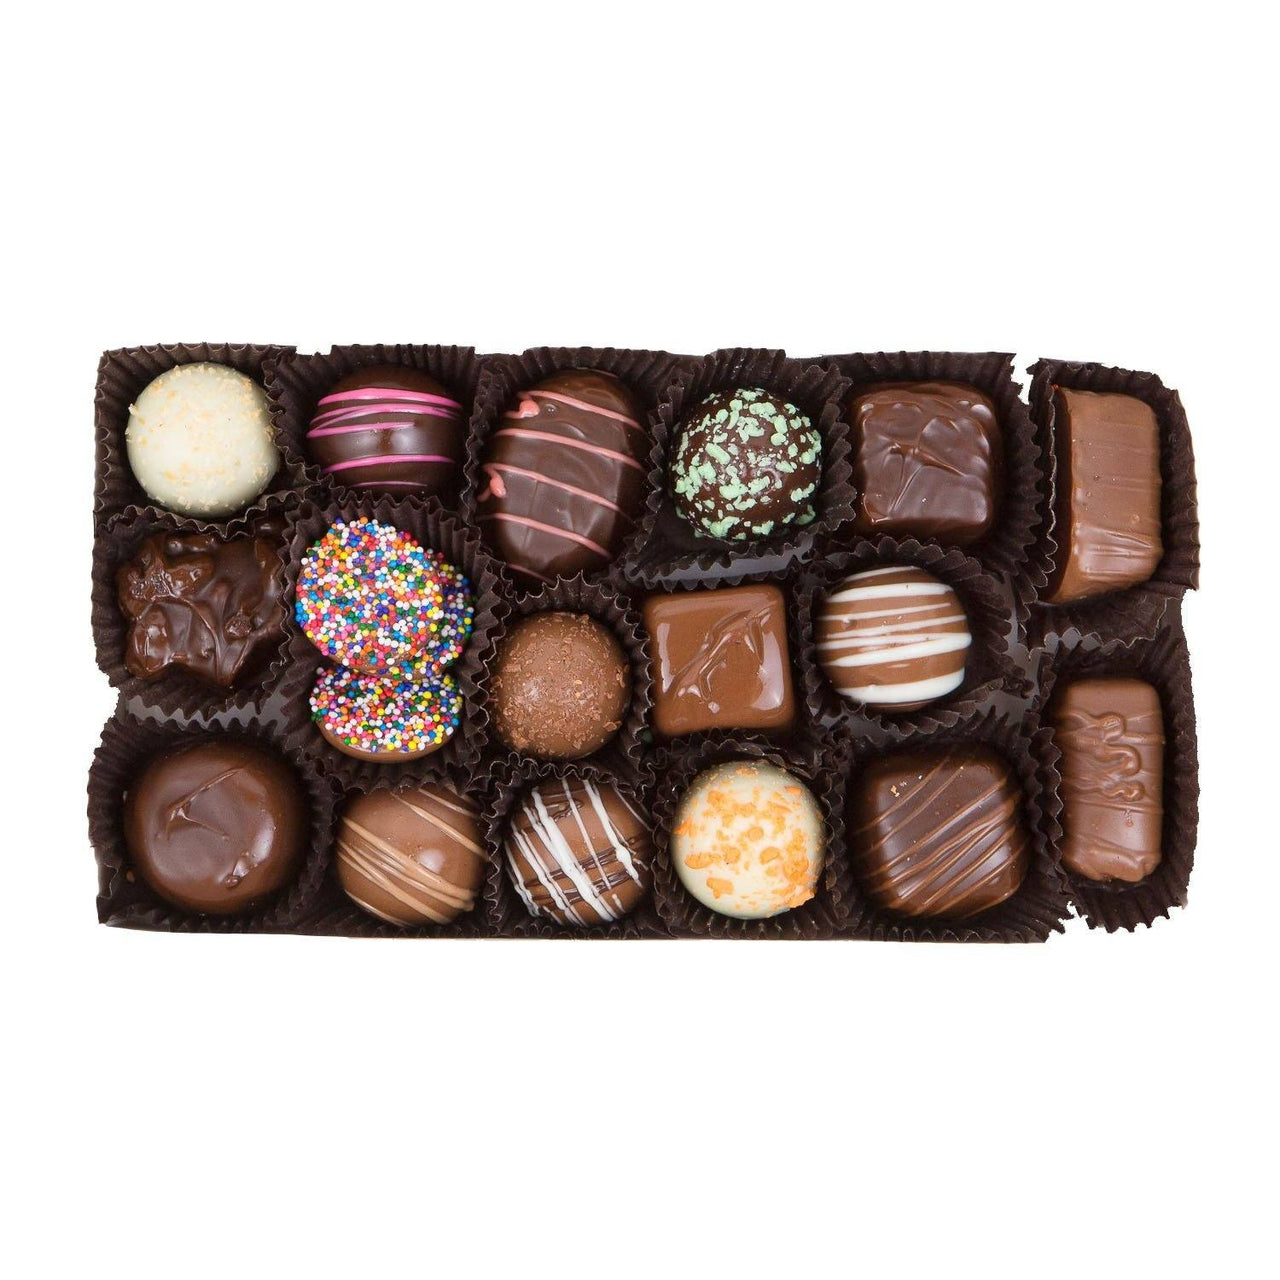 Secret Santa Gift Ideas - Chocolate Assortment Gift Box - Jackie's Chocolate (4336368681075)